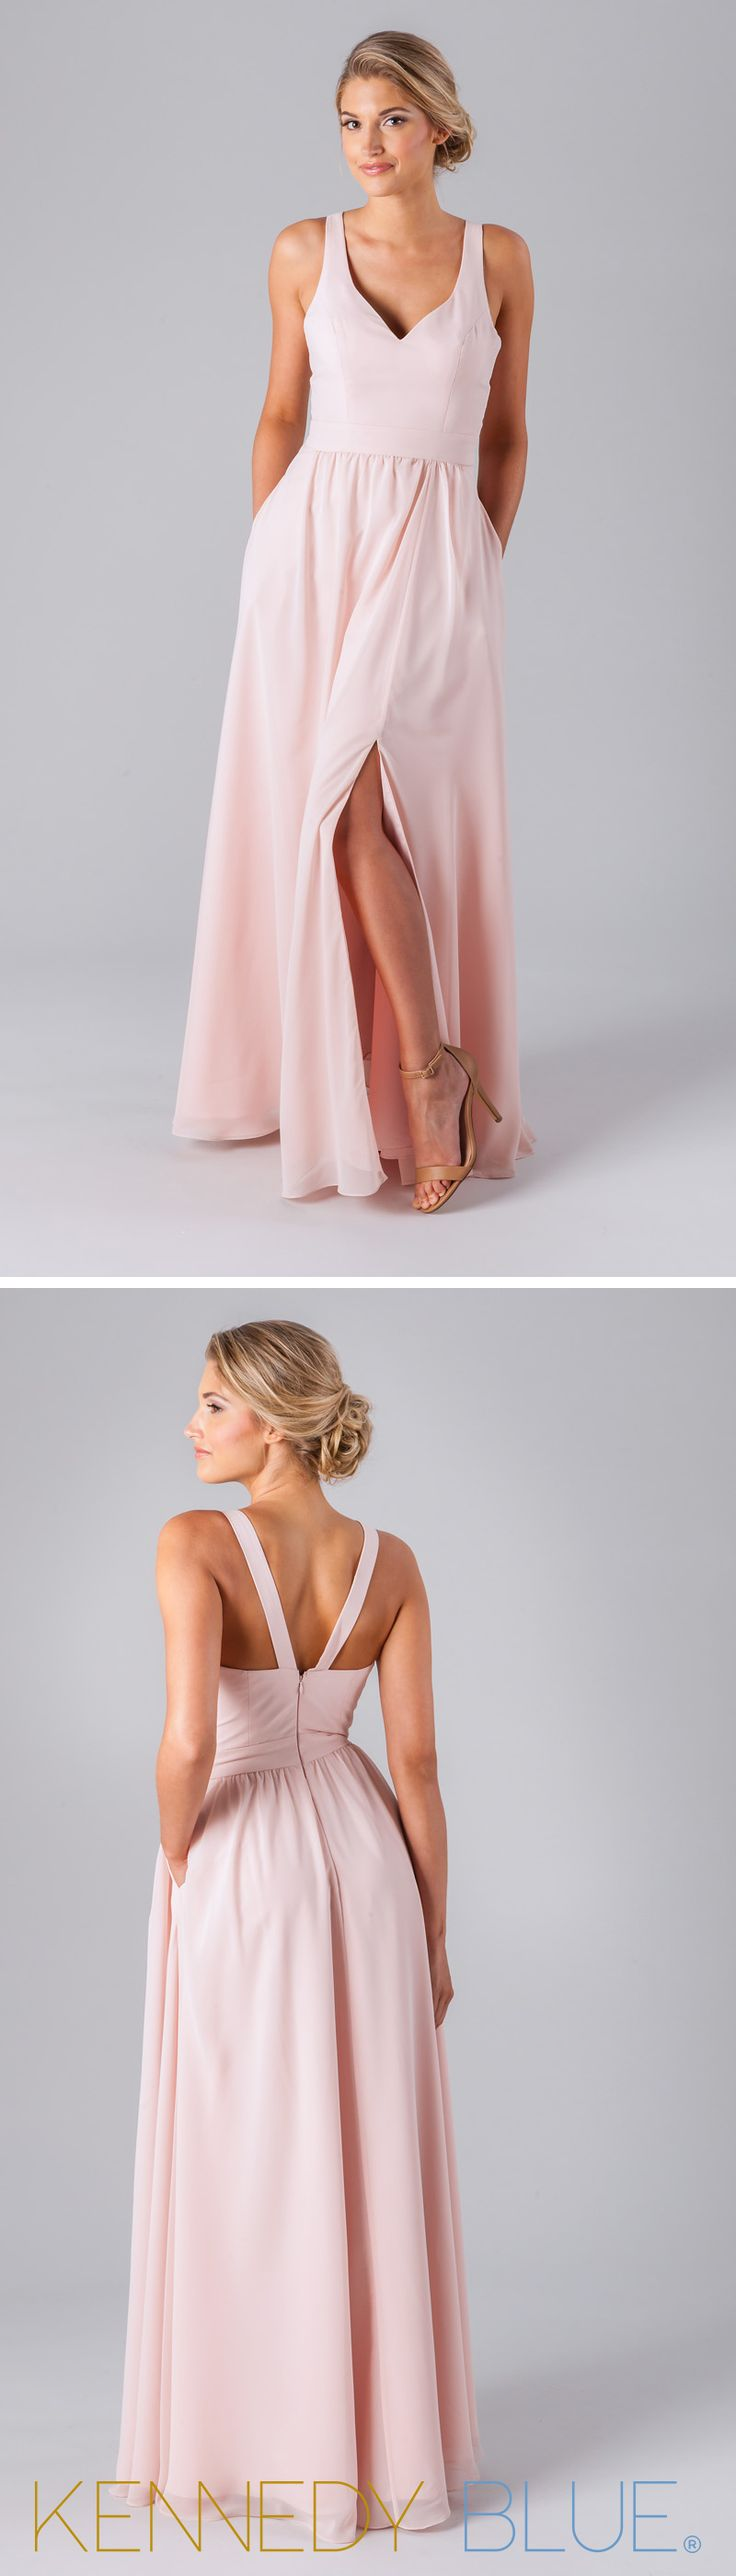 Kennedy Blue Riley is a gorgeous V-neck bridesmaid dress made of soft, luxe chiffon fabric.